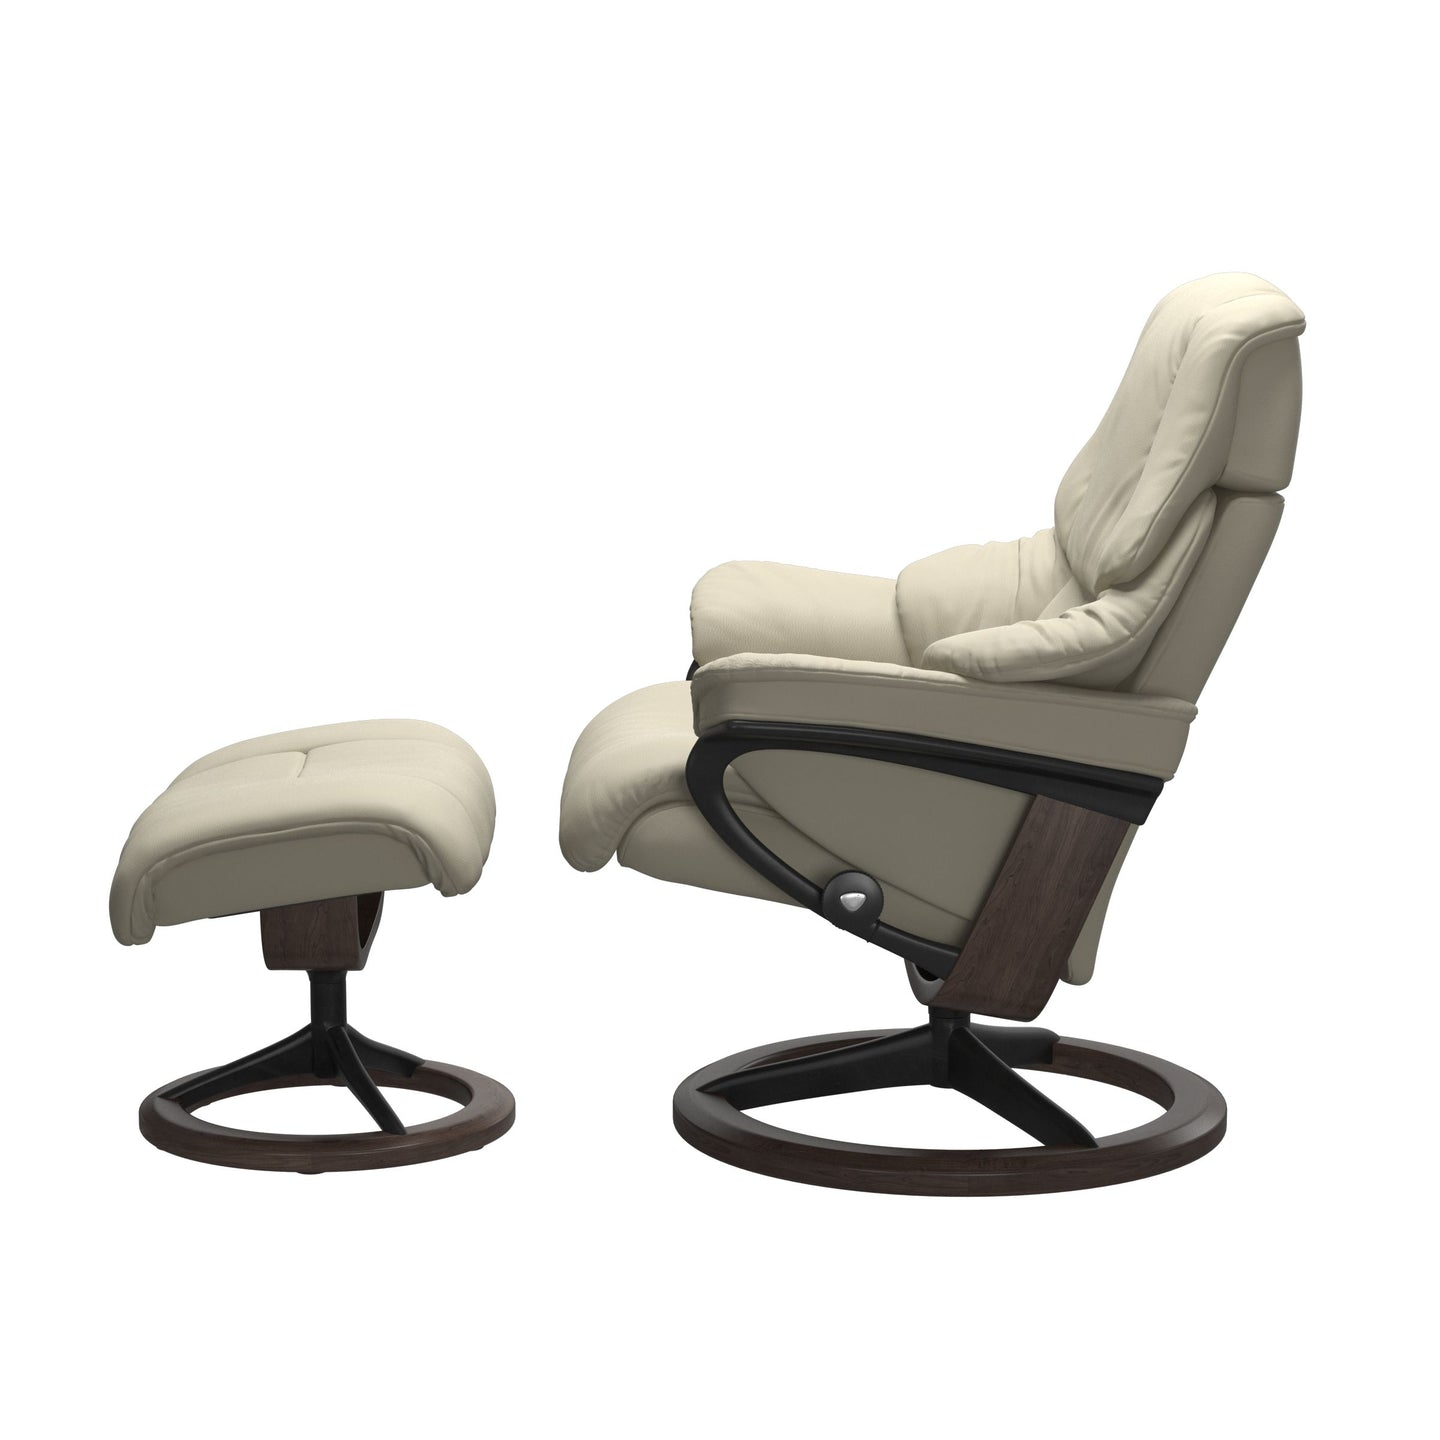 Stressless® Reno (S) Signature chair with footstool